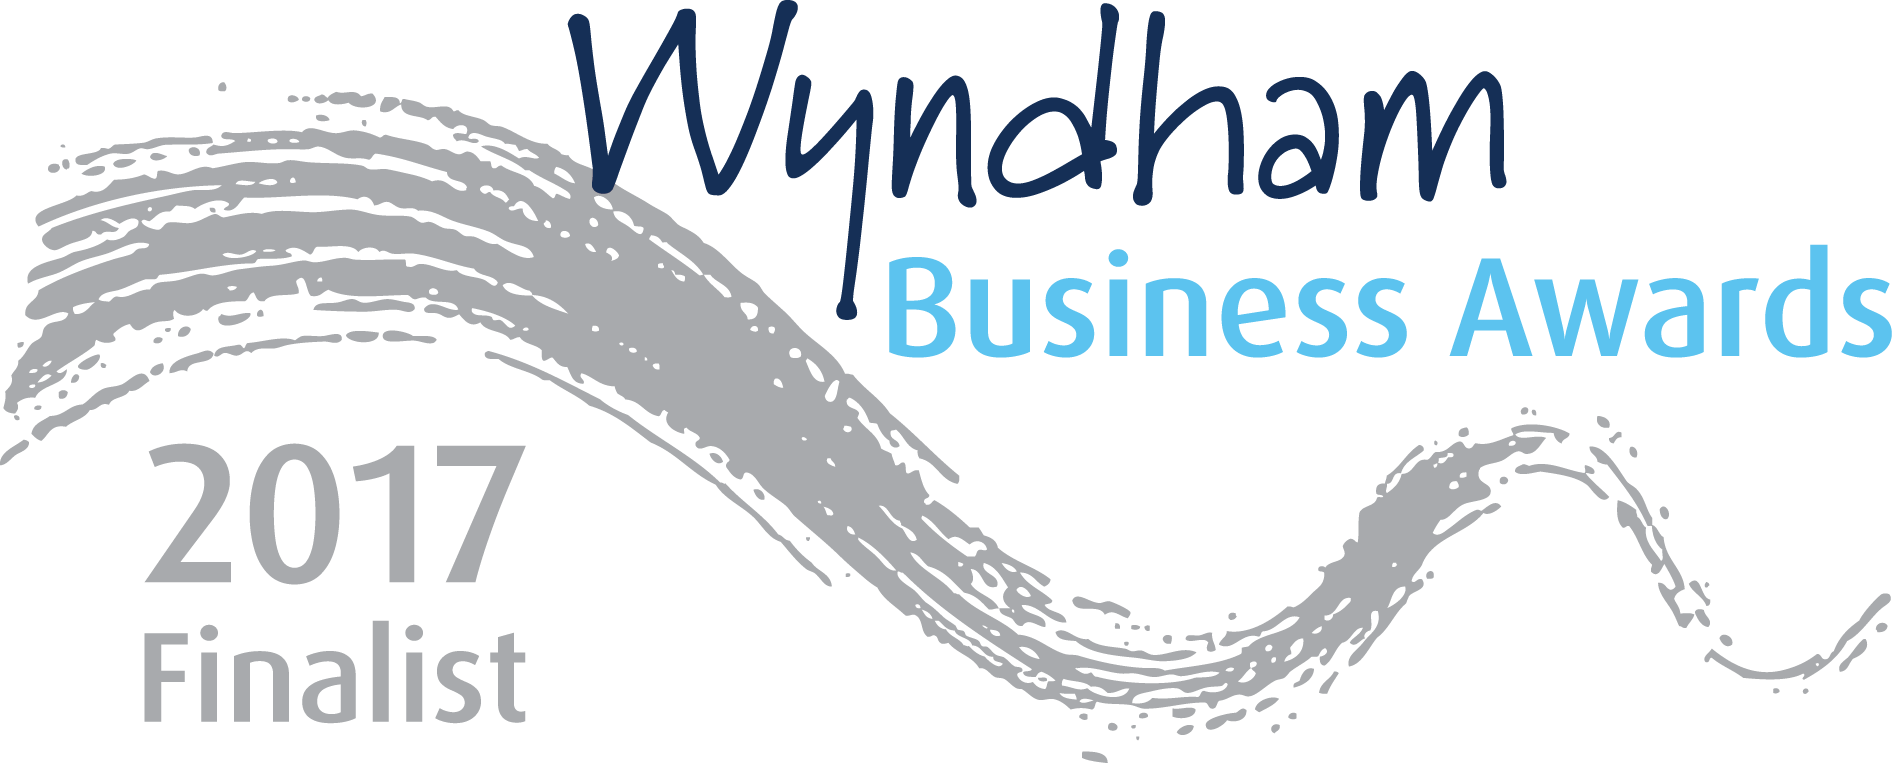 wyndham-business-awards-logo-2017.png